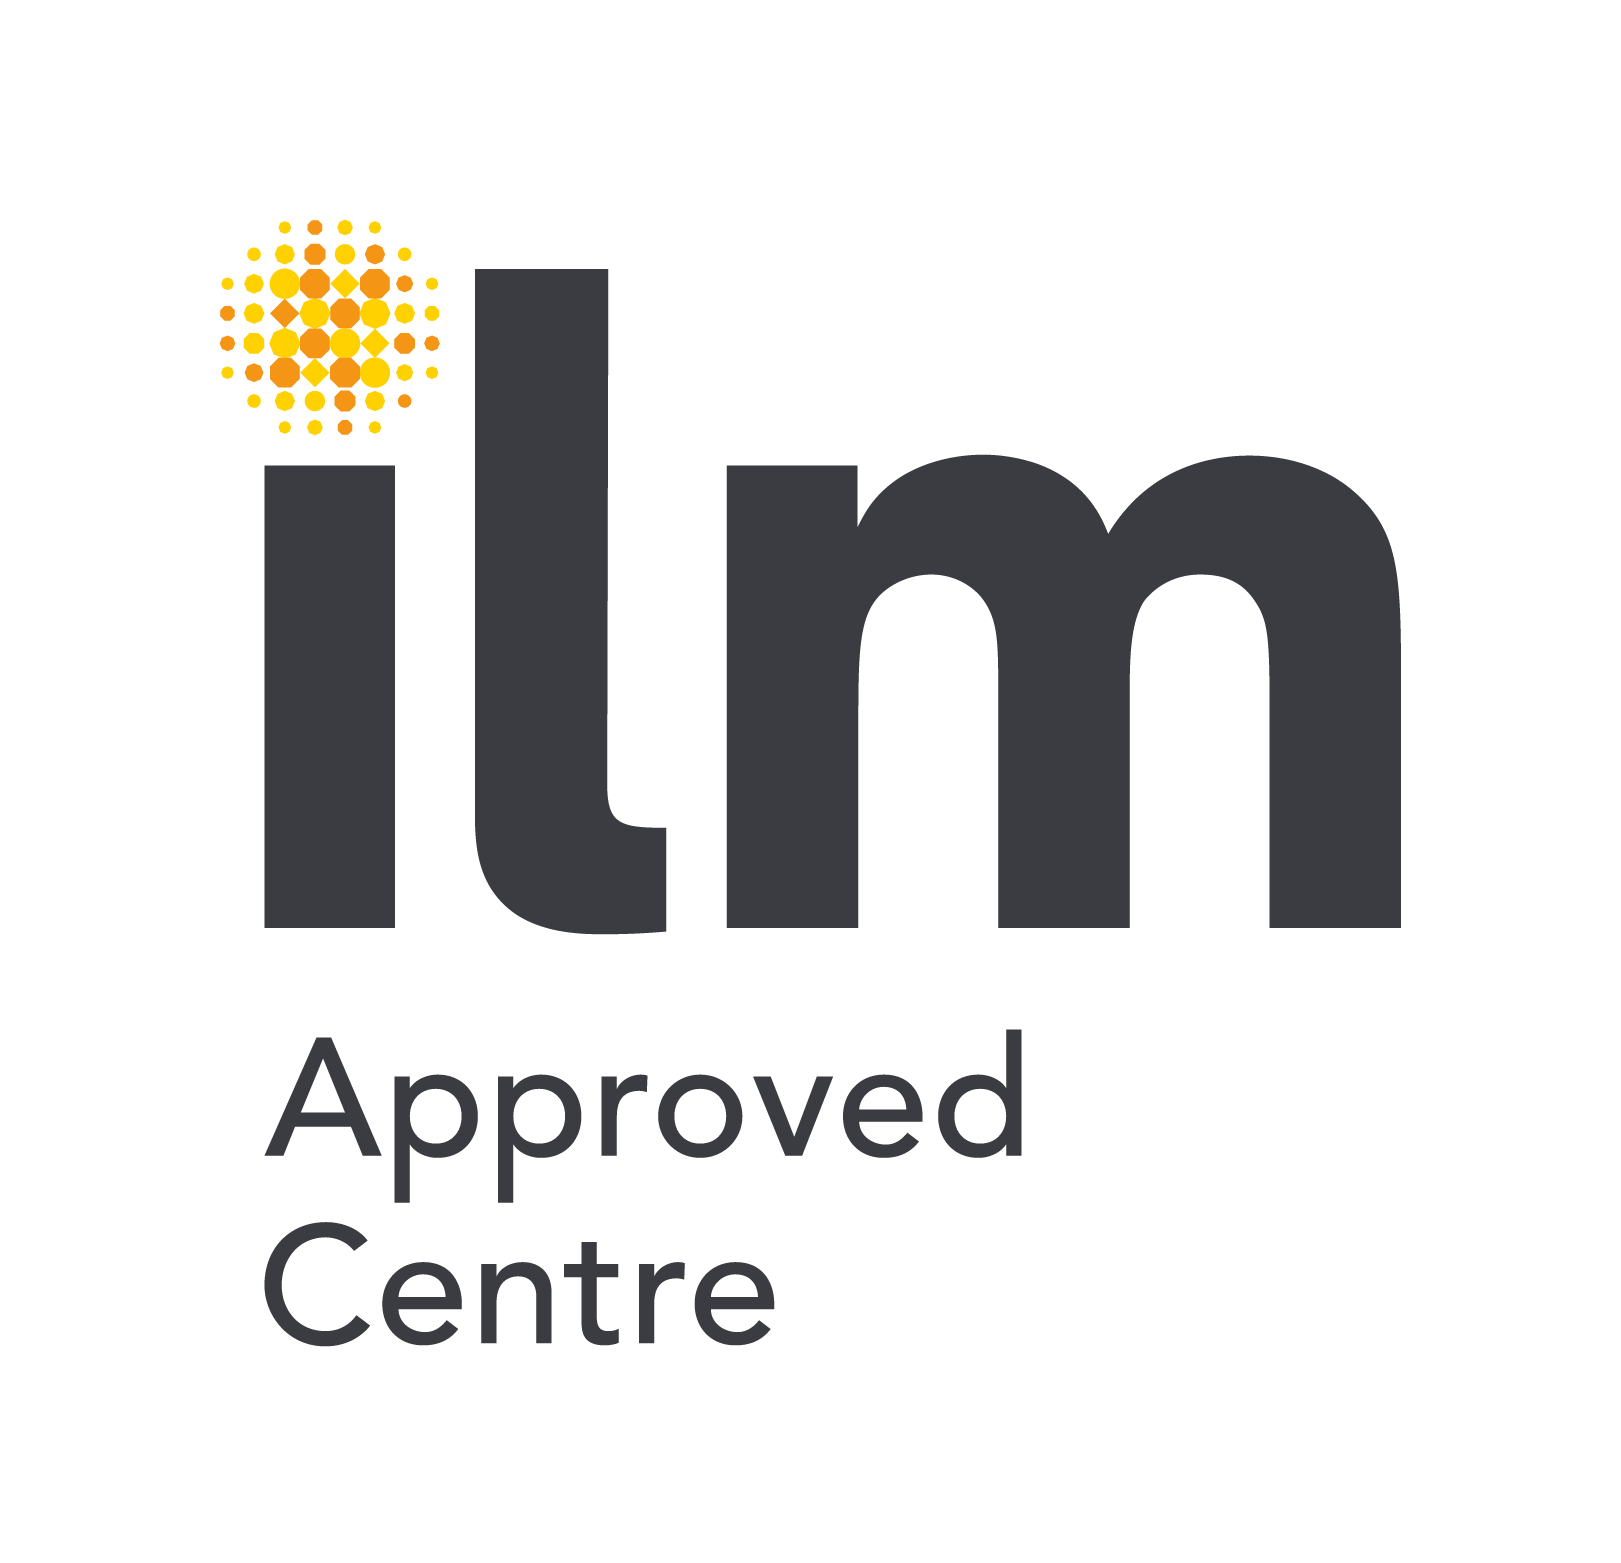 Stirling ILM Coaching Courses Qualifications Approved Centre